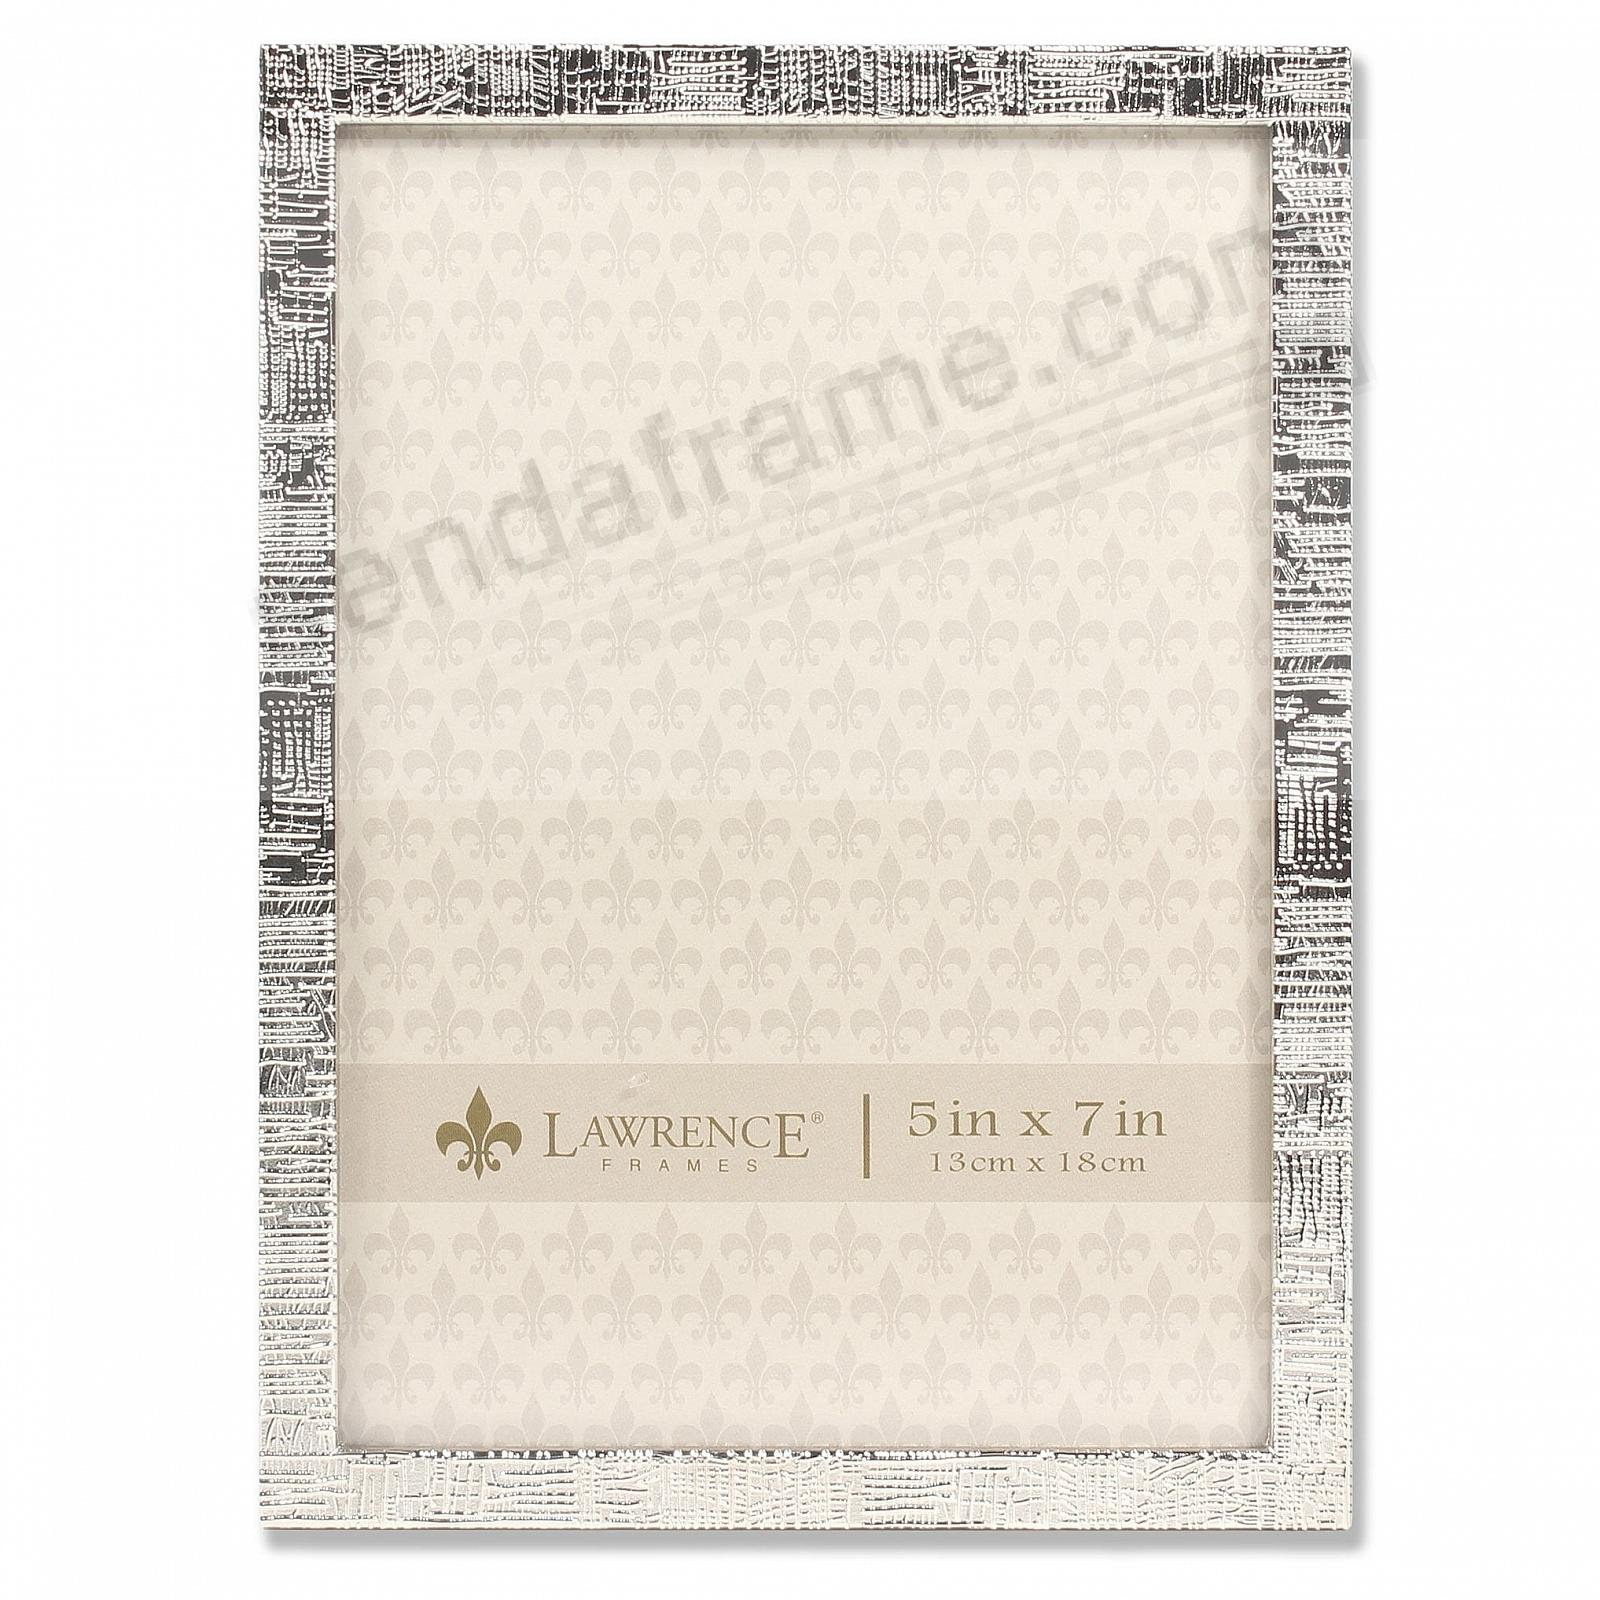 SILVER LINEN Pattern frame by Lawrence Frames®